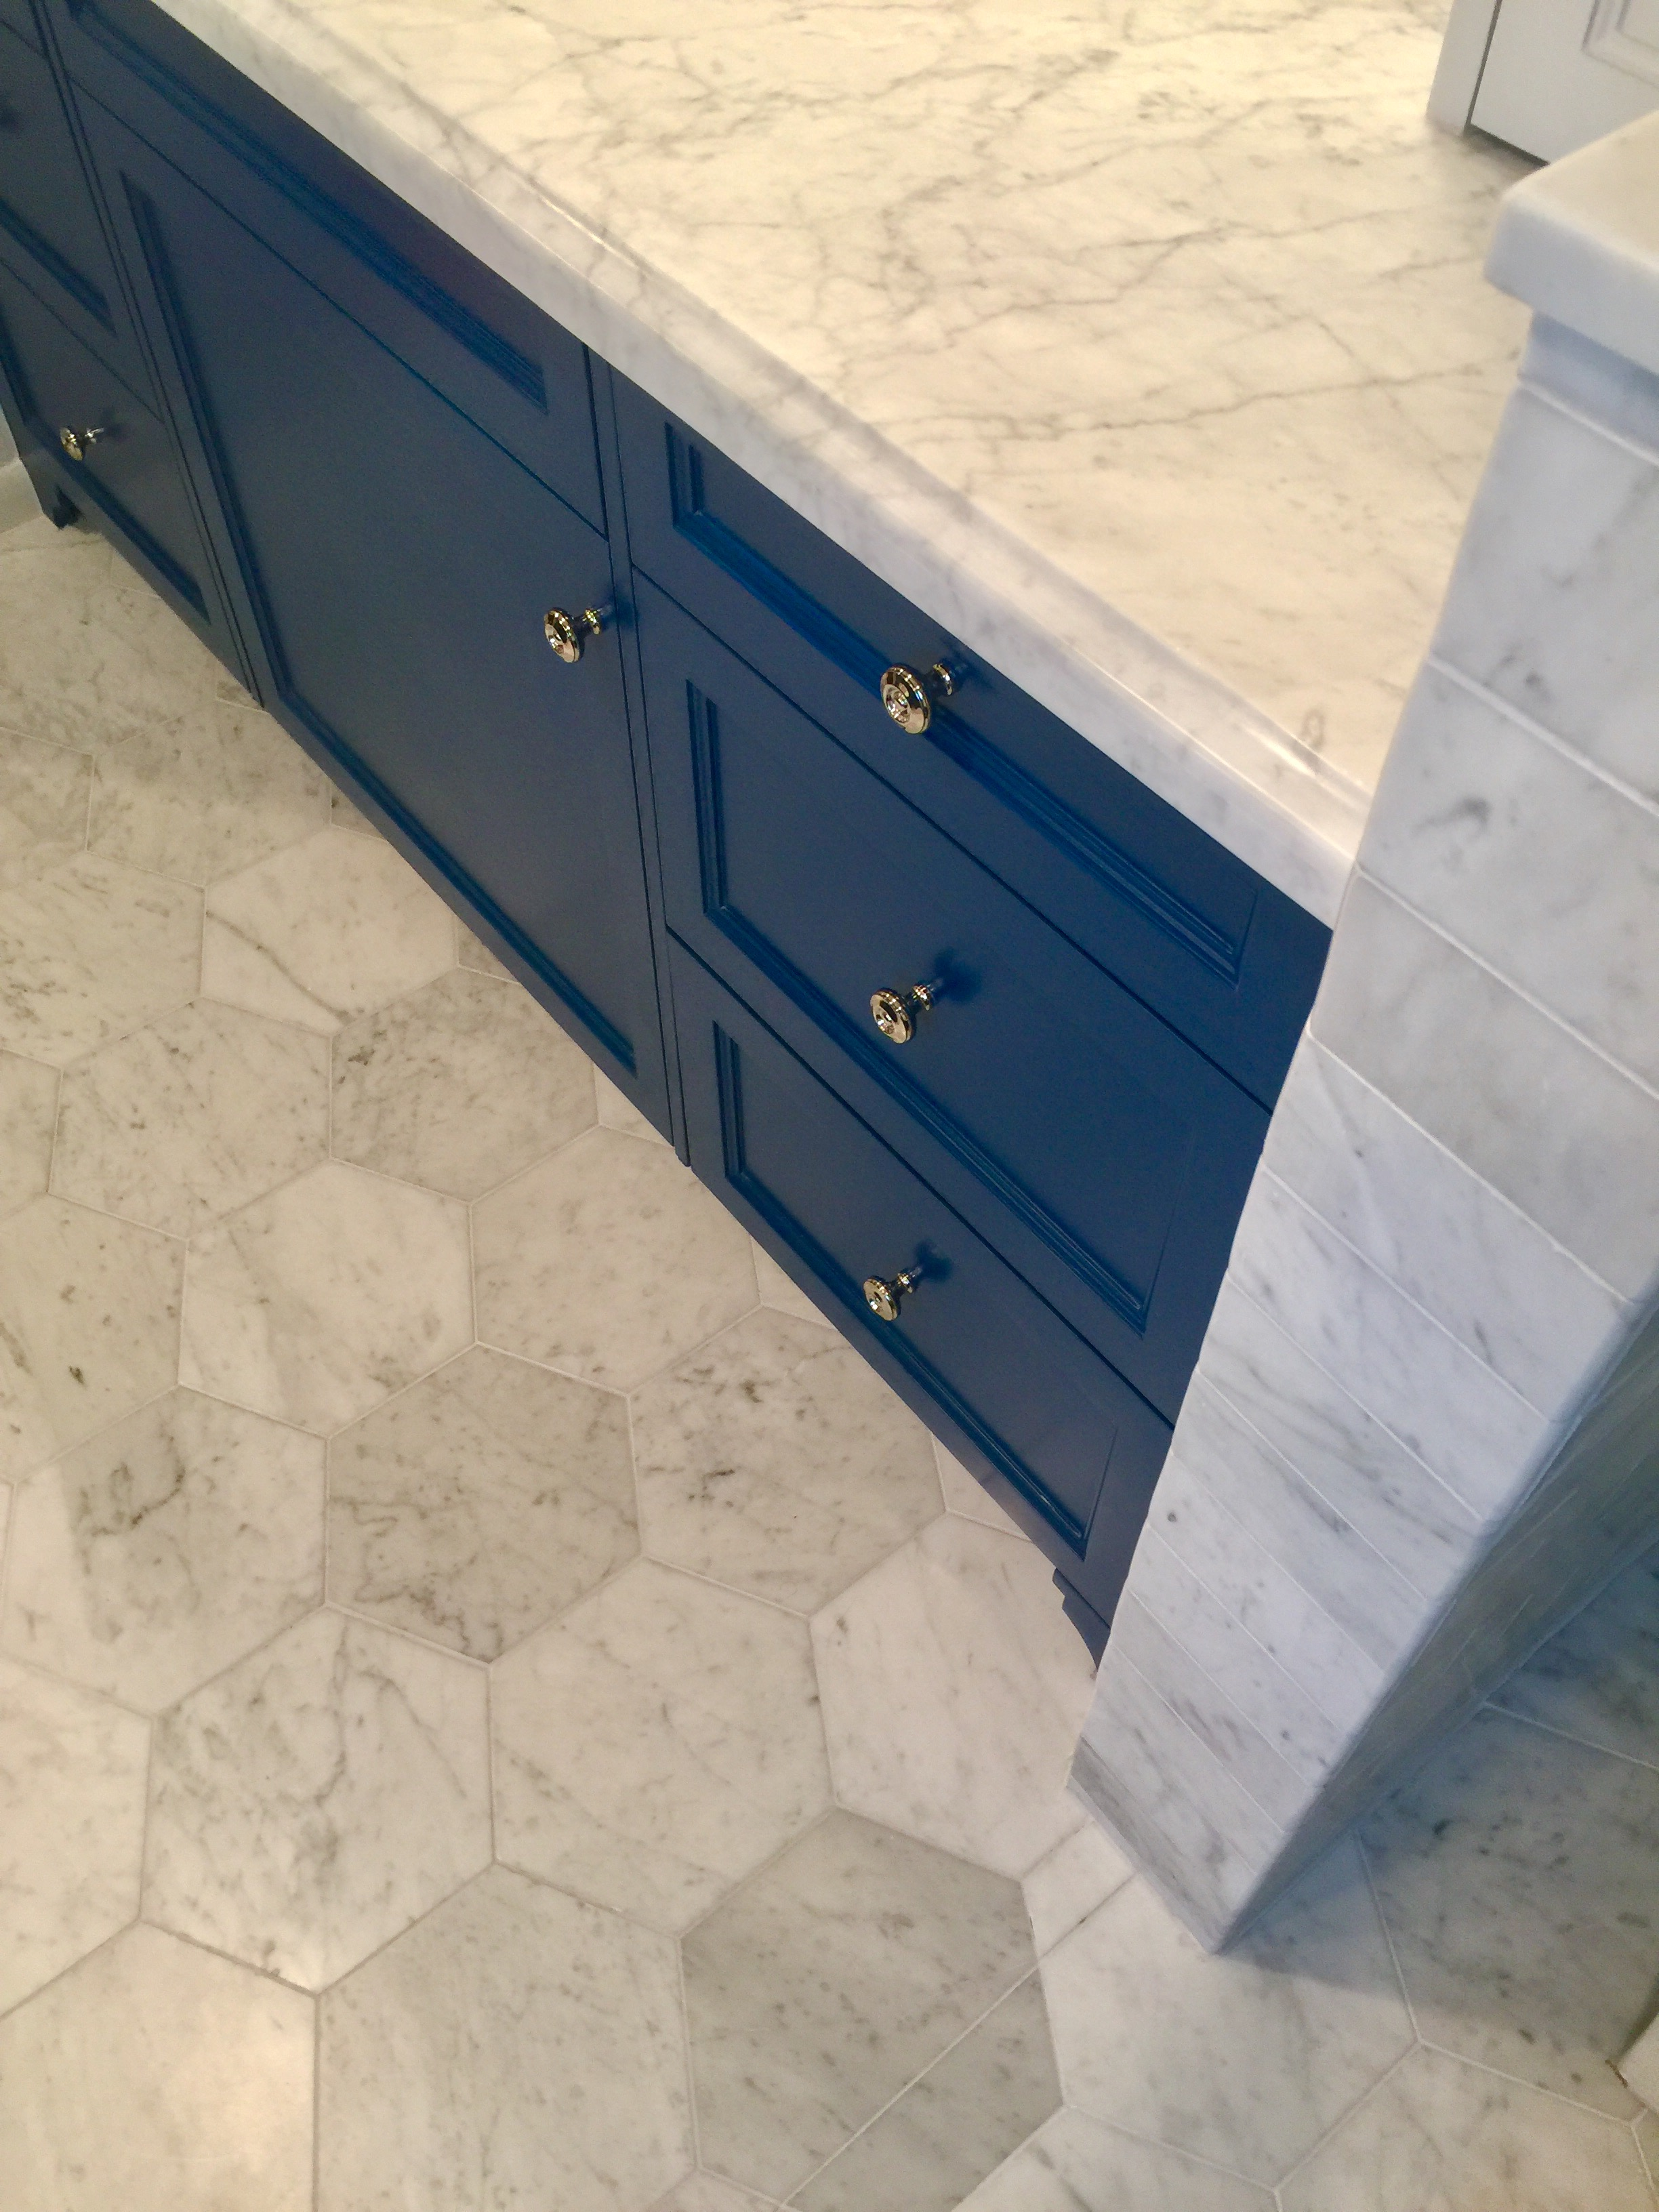 Navy cabinetry with Cararra marble hex tile floor - Designer: Carla Aston